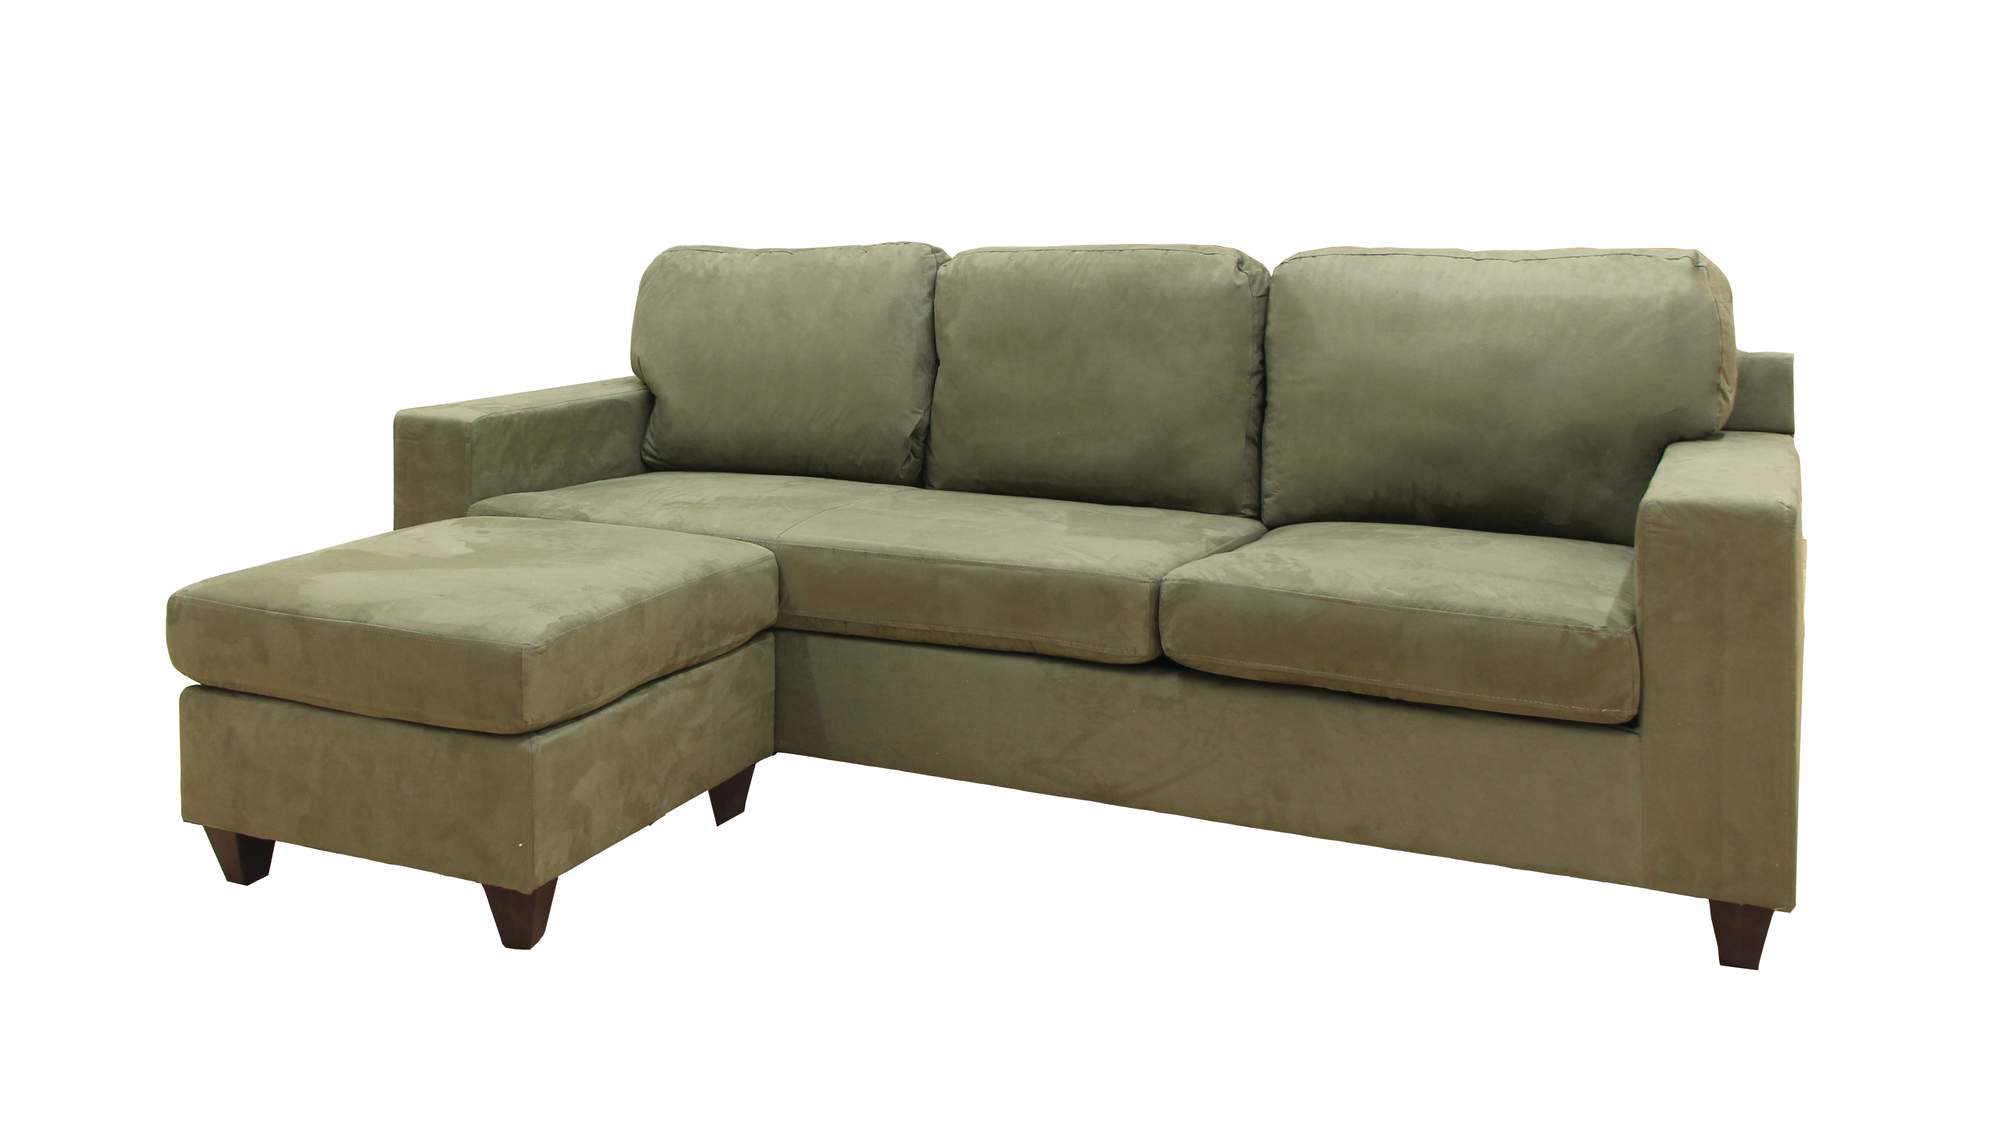 Acme Furniture Vogue Sectional Sofa by Acme Furniture